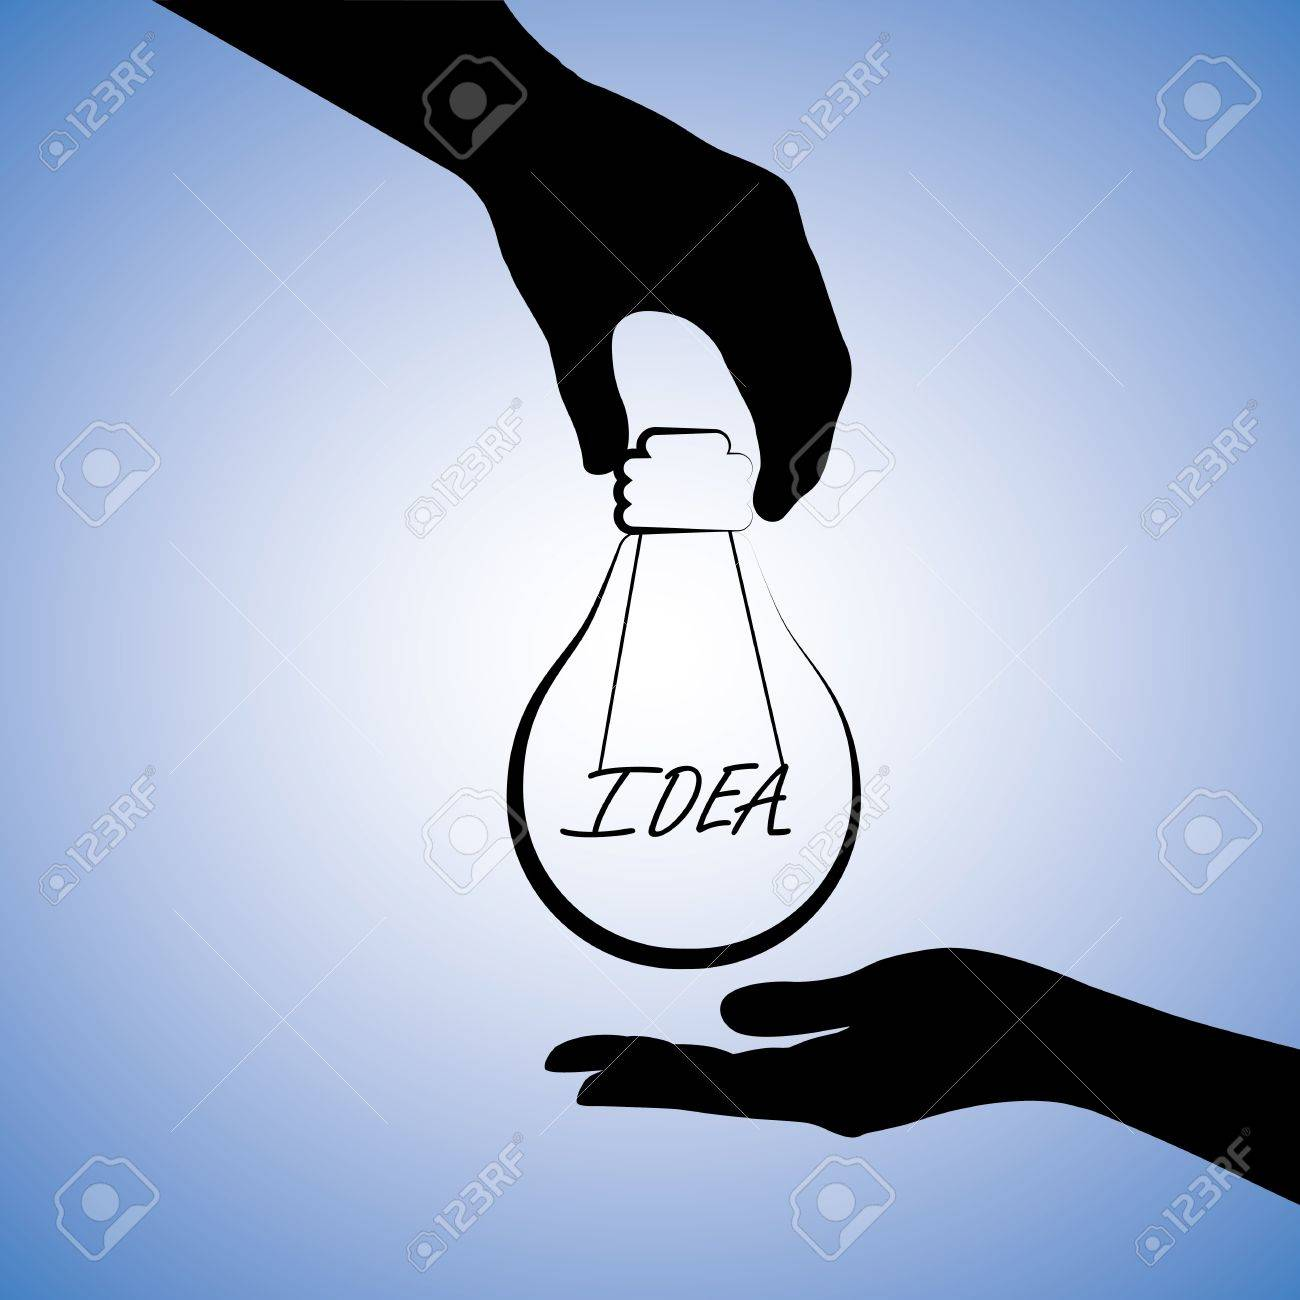 Concept illustration of one person providing idea to the other. The graphic uses a light bulb with filament replaced with word idea to convey the concept of problem solving or finding solution Stock Vector - 15702854